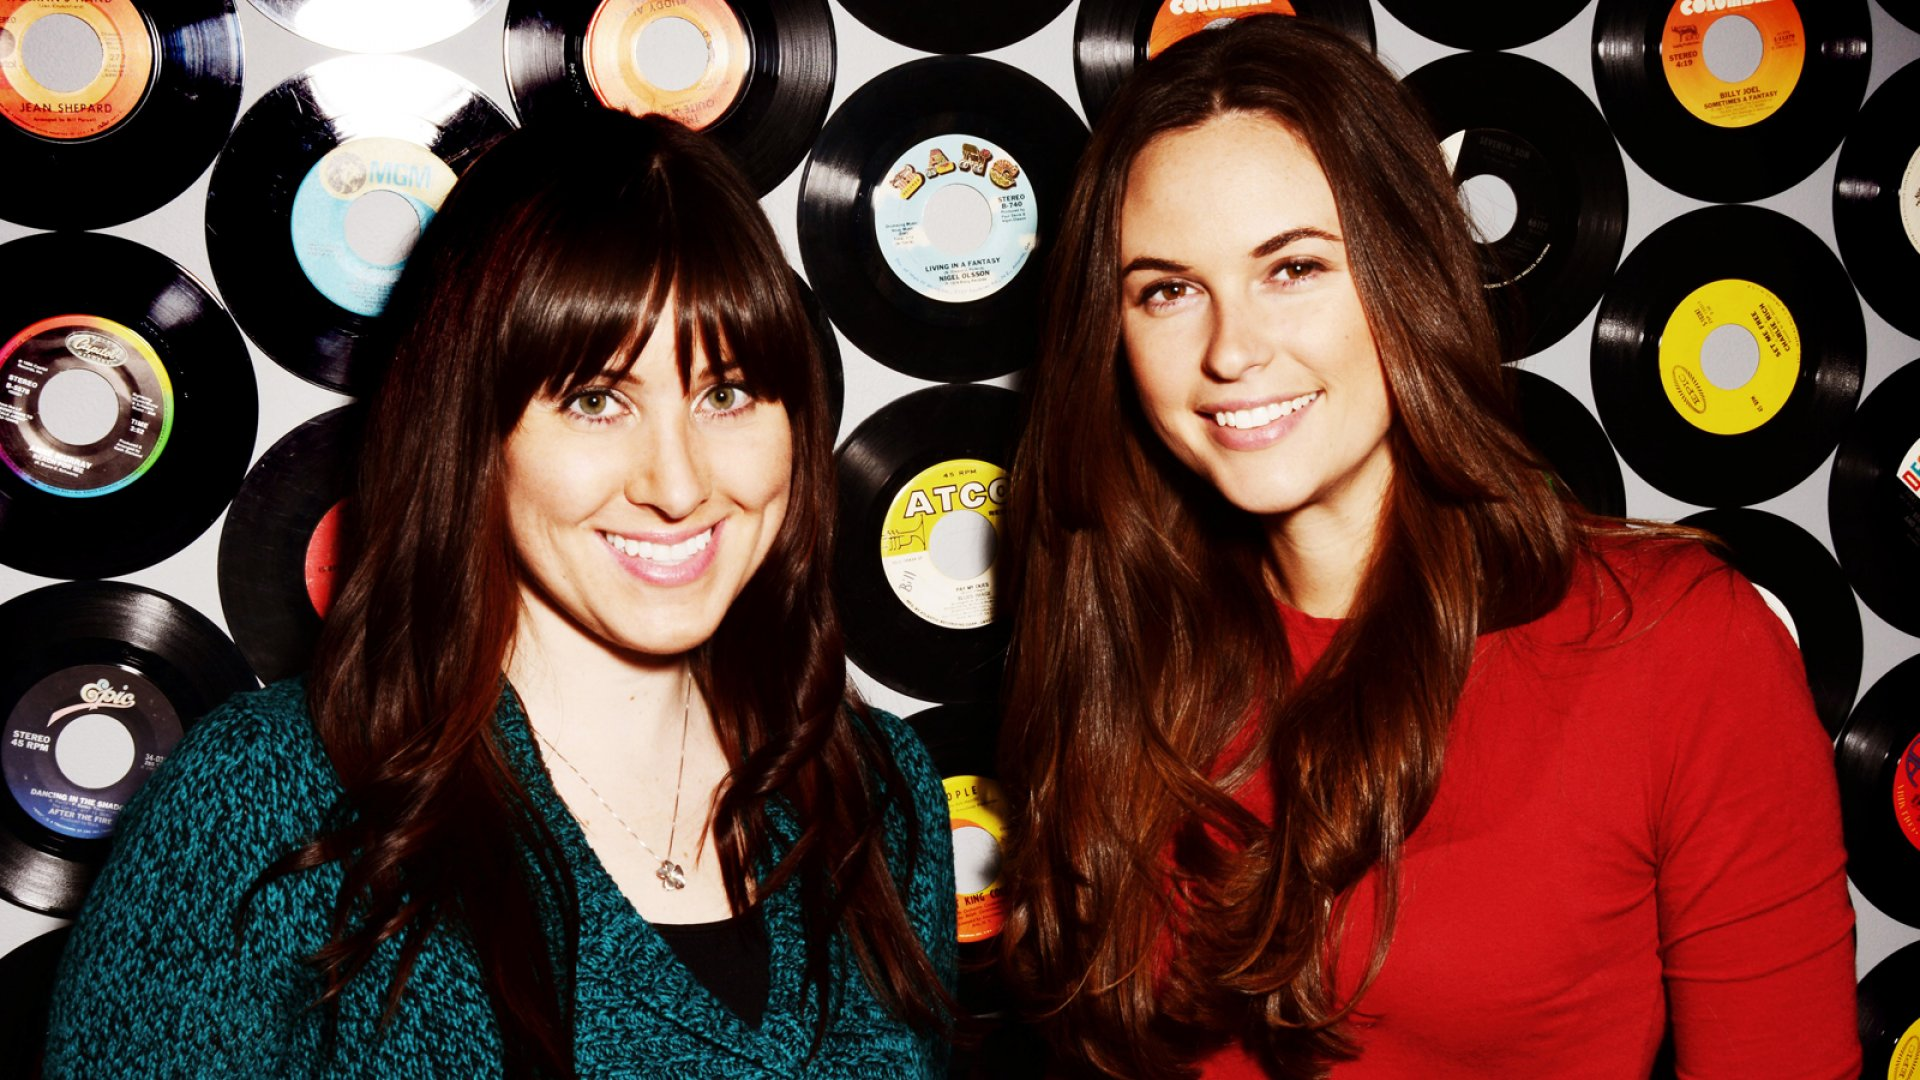 Brittany Hodak (left) and Kim Kaupe (right) co-founded ZinePak as a way to get people enthused about bands again. In the process, they've been selling some serious CDs.